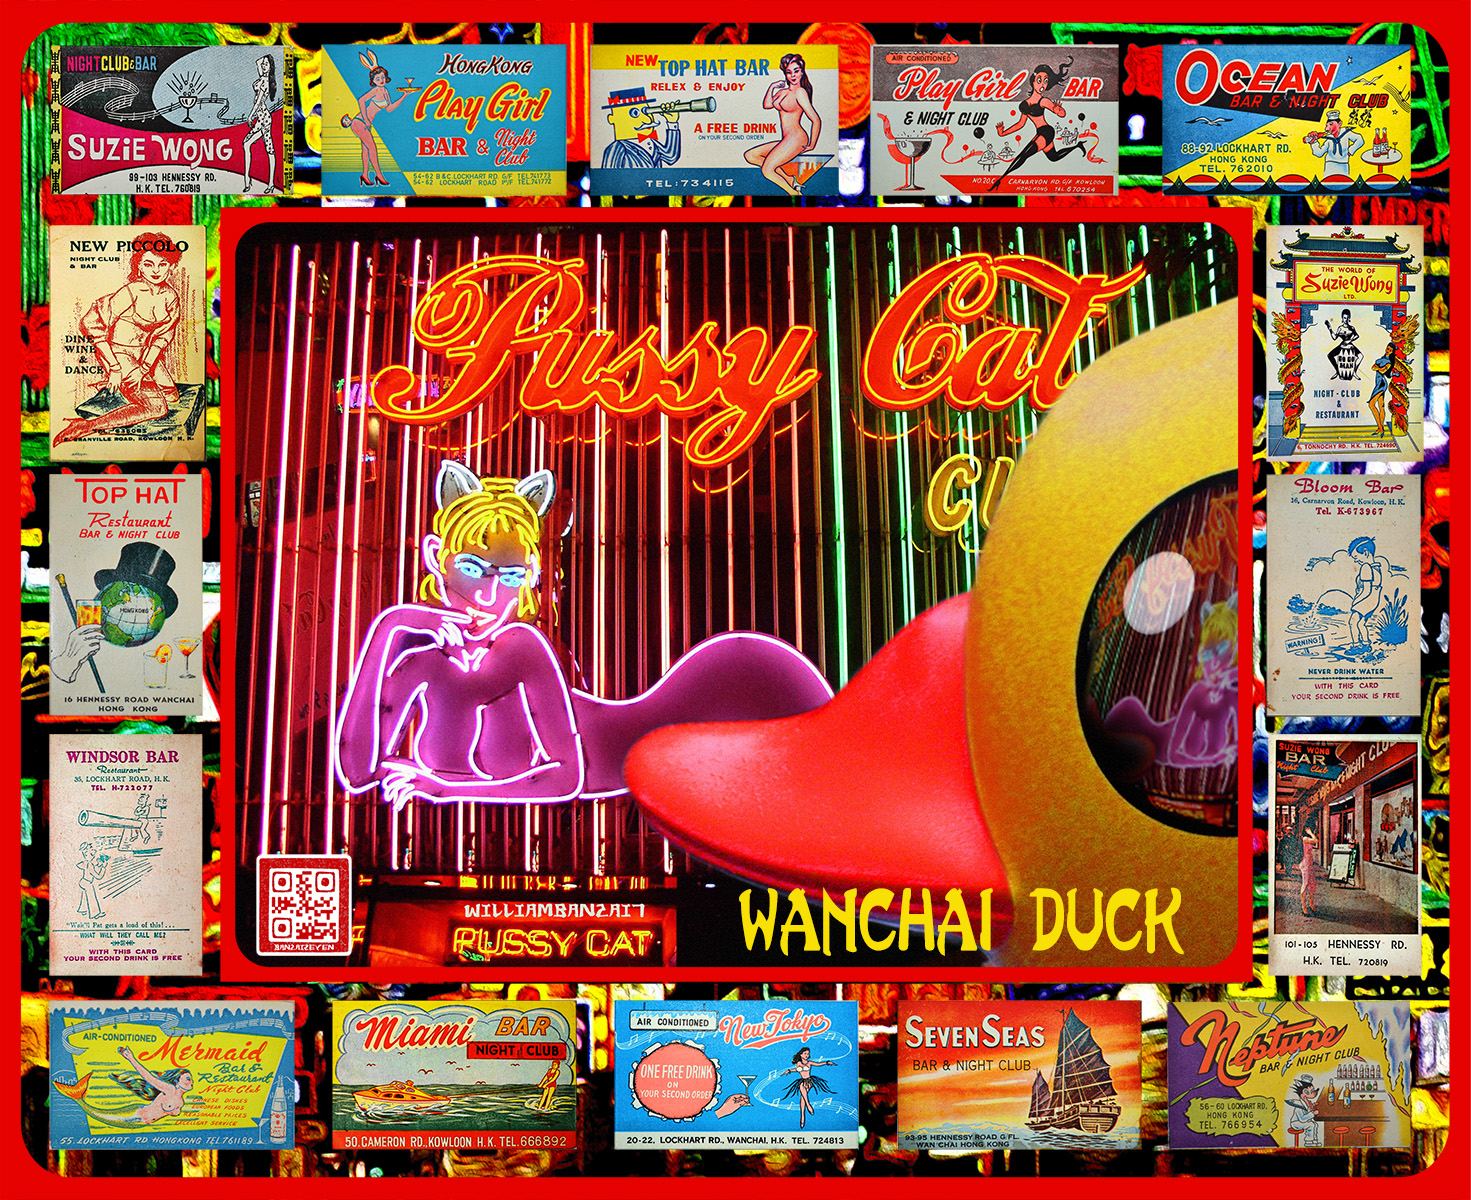 Wanchai Duck  (All Rights Reserved, Art Work by William Banzai7) Bar Card Collection courtesy of m20wc51 on  Flickr